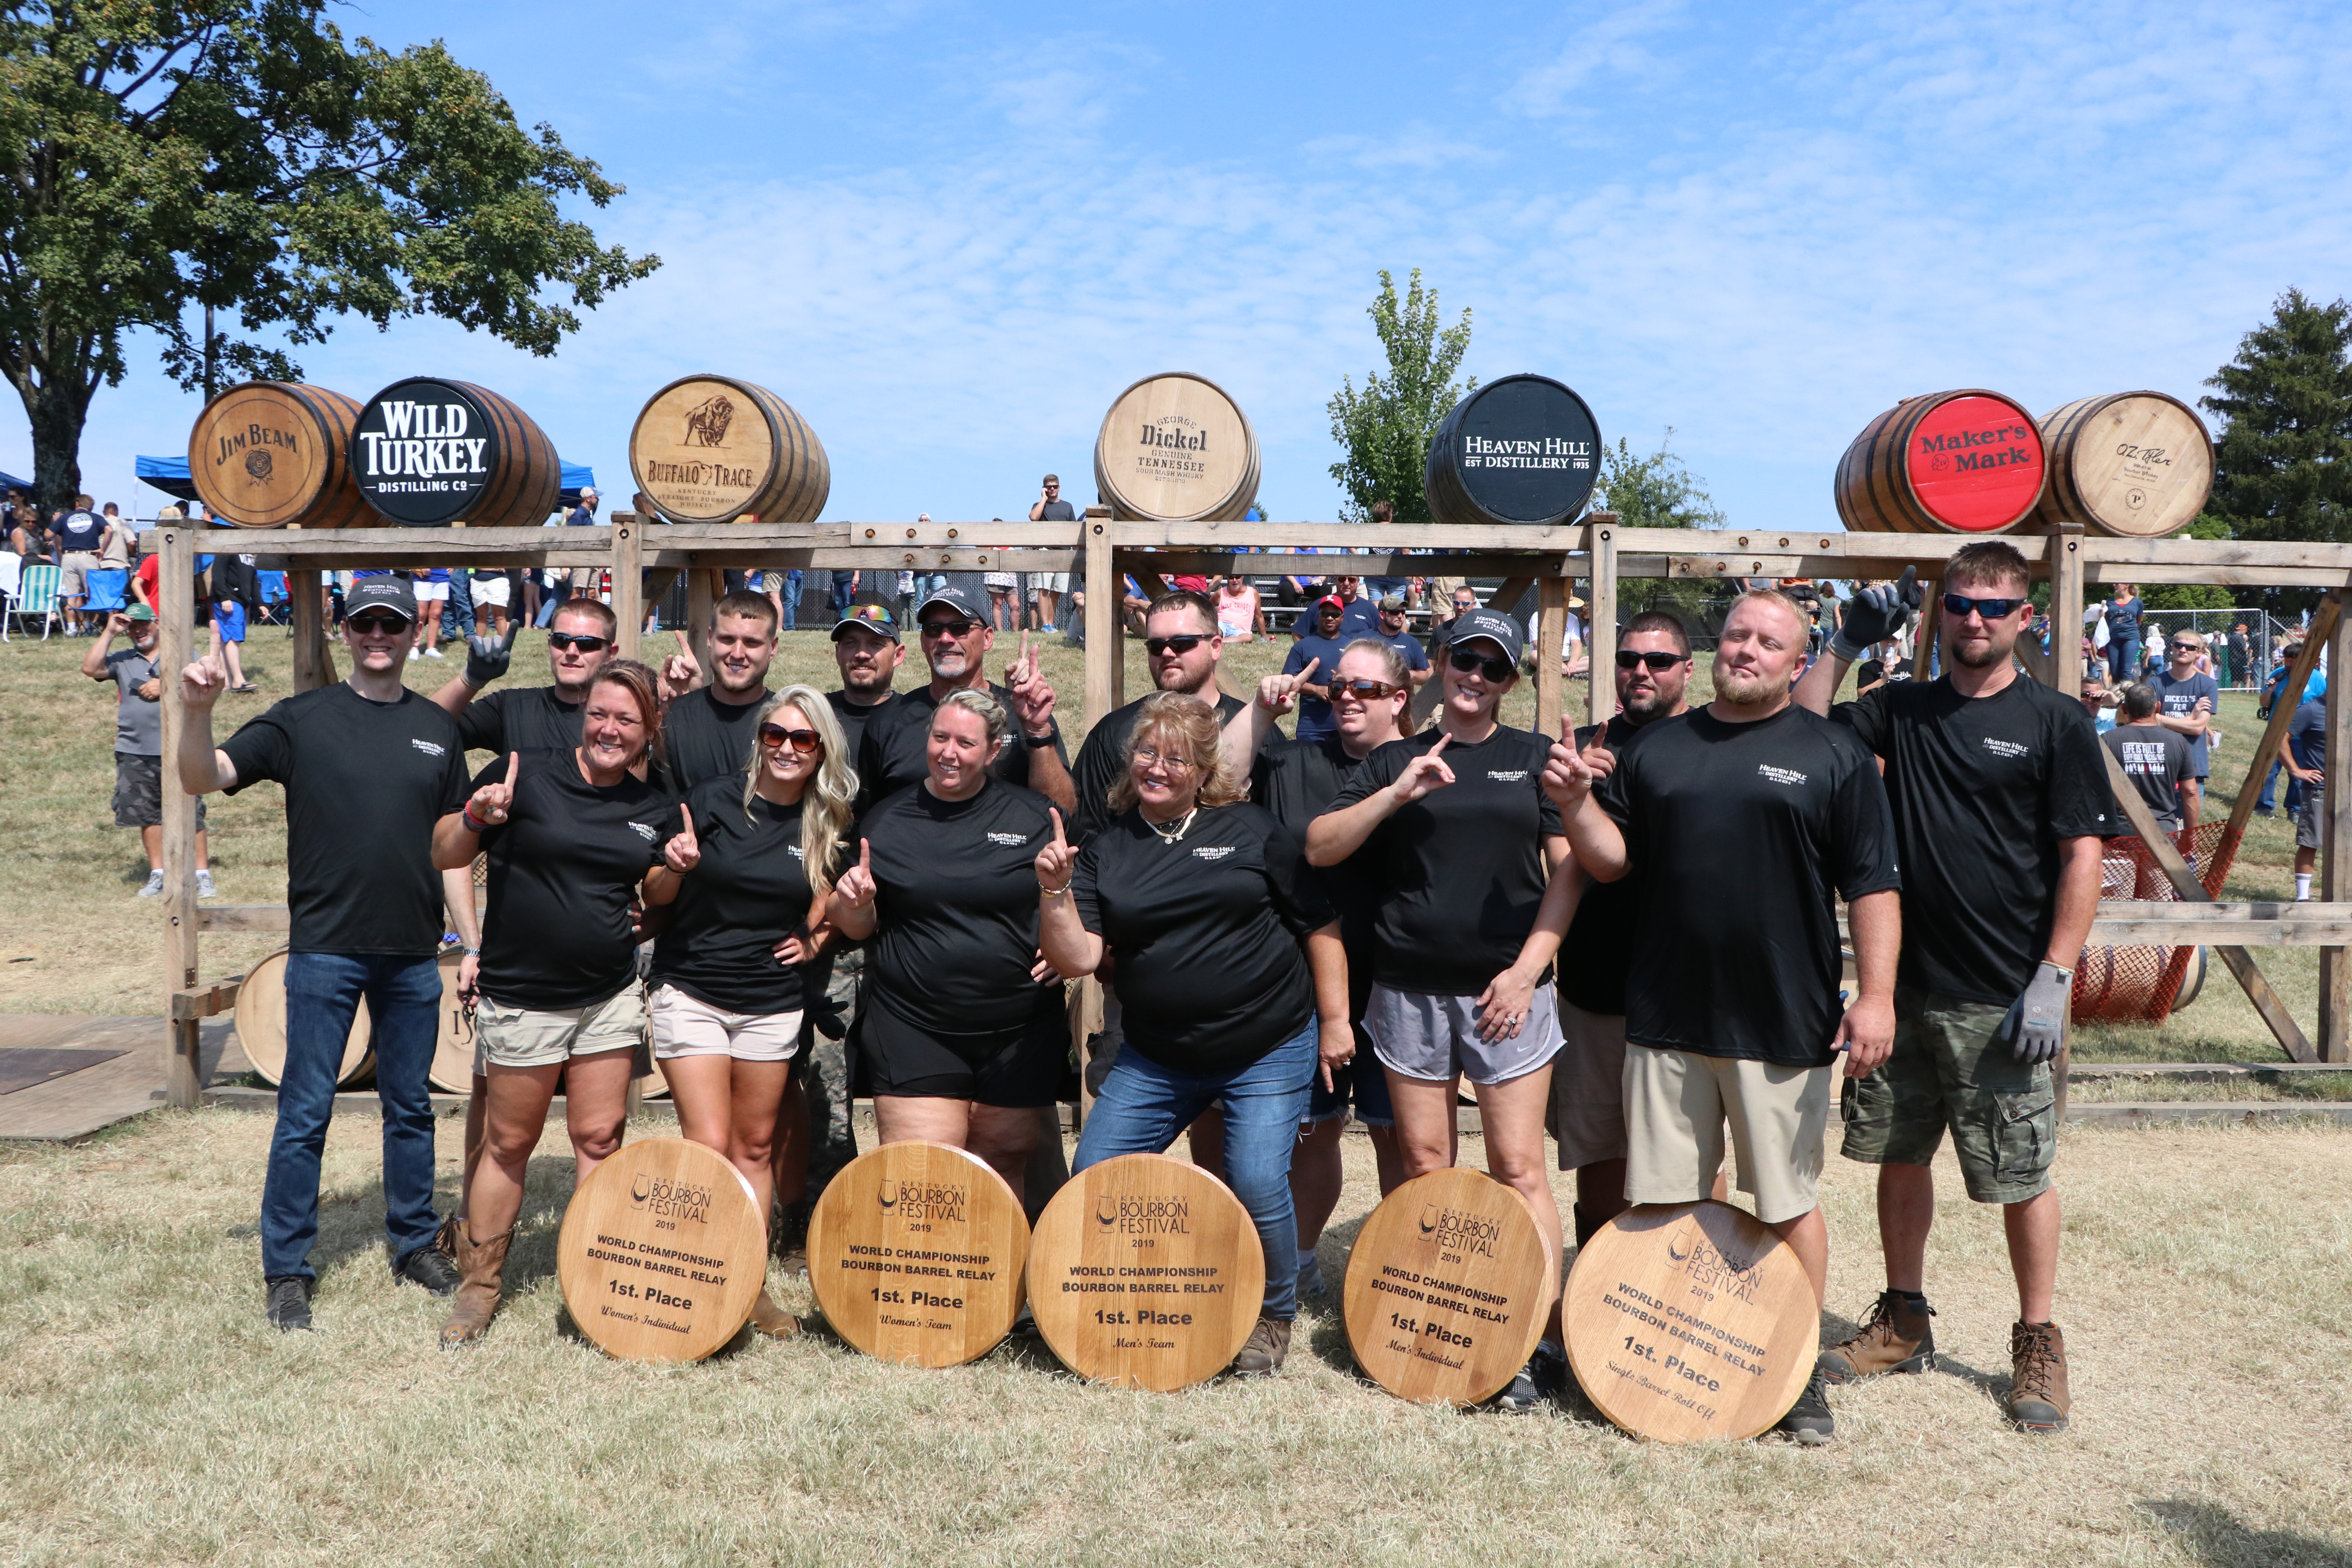 IMG 9151 - KBF CROWNS WINNING ROLLERS IN THE 2019 WORLD CHAMPIONSHIP BOURBON BARREL RELAY® RACES